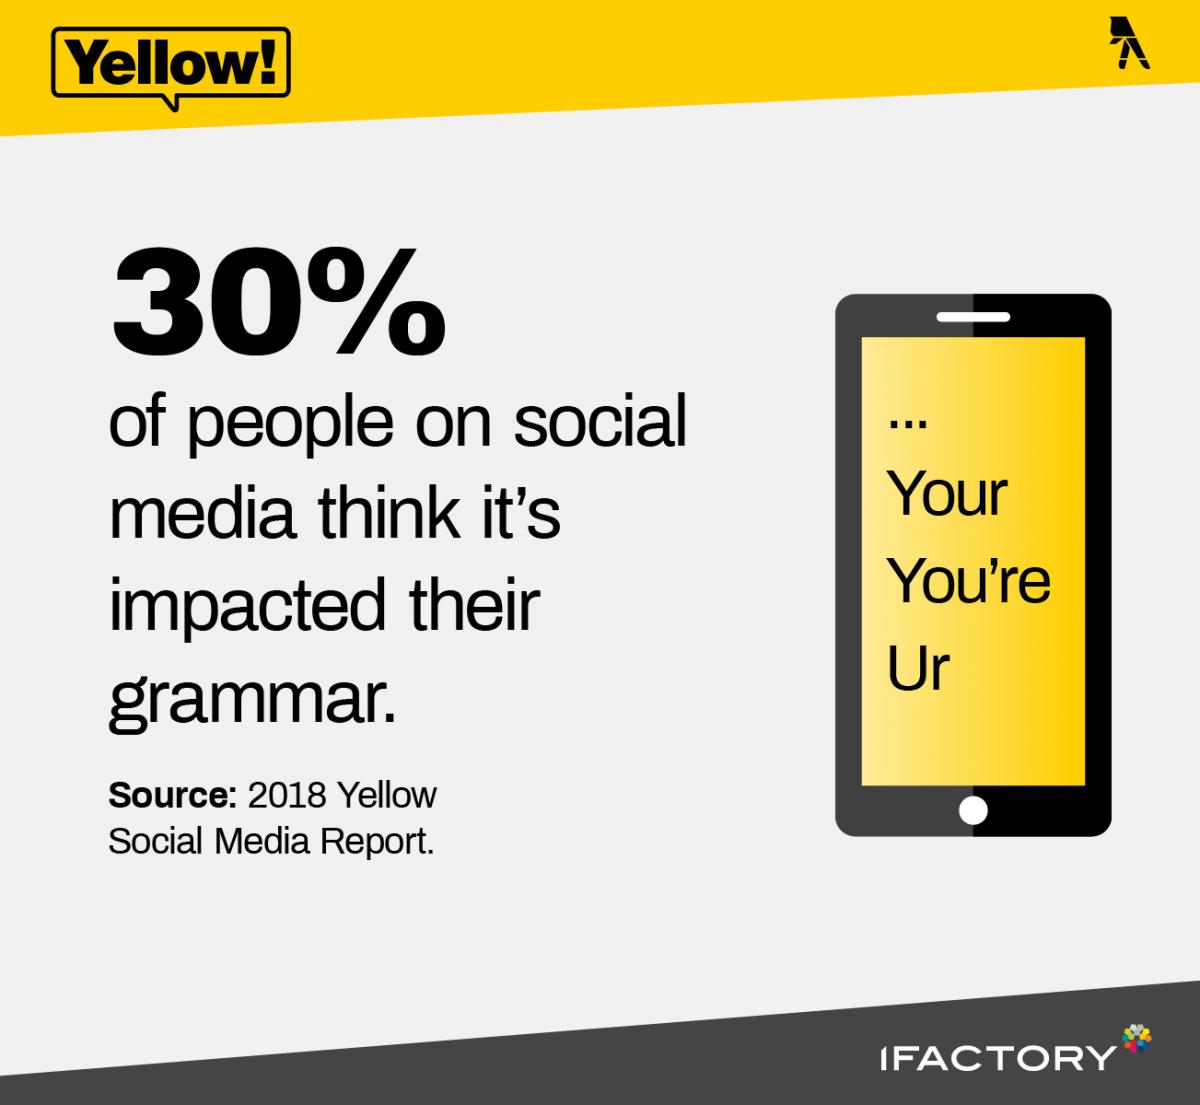 30% of people on social media think it's impacted their grammar